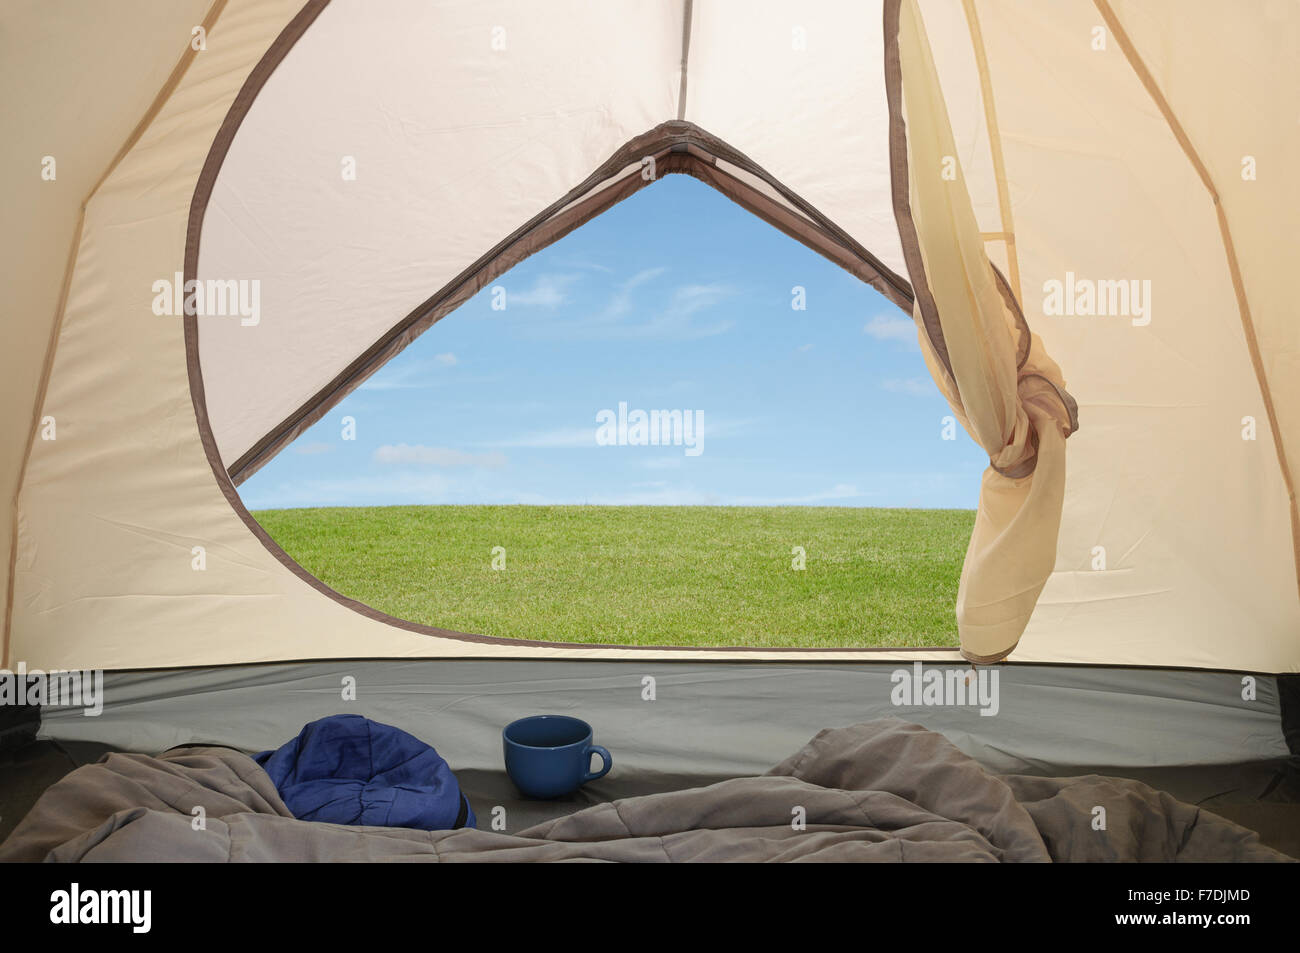 View inside tent through tent door on tranquil c&ing c&site & View inside tent through tent door on tranquil camping campsite ...